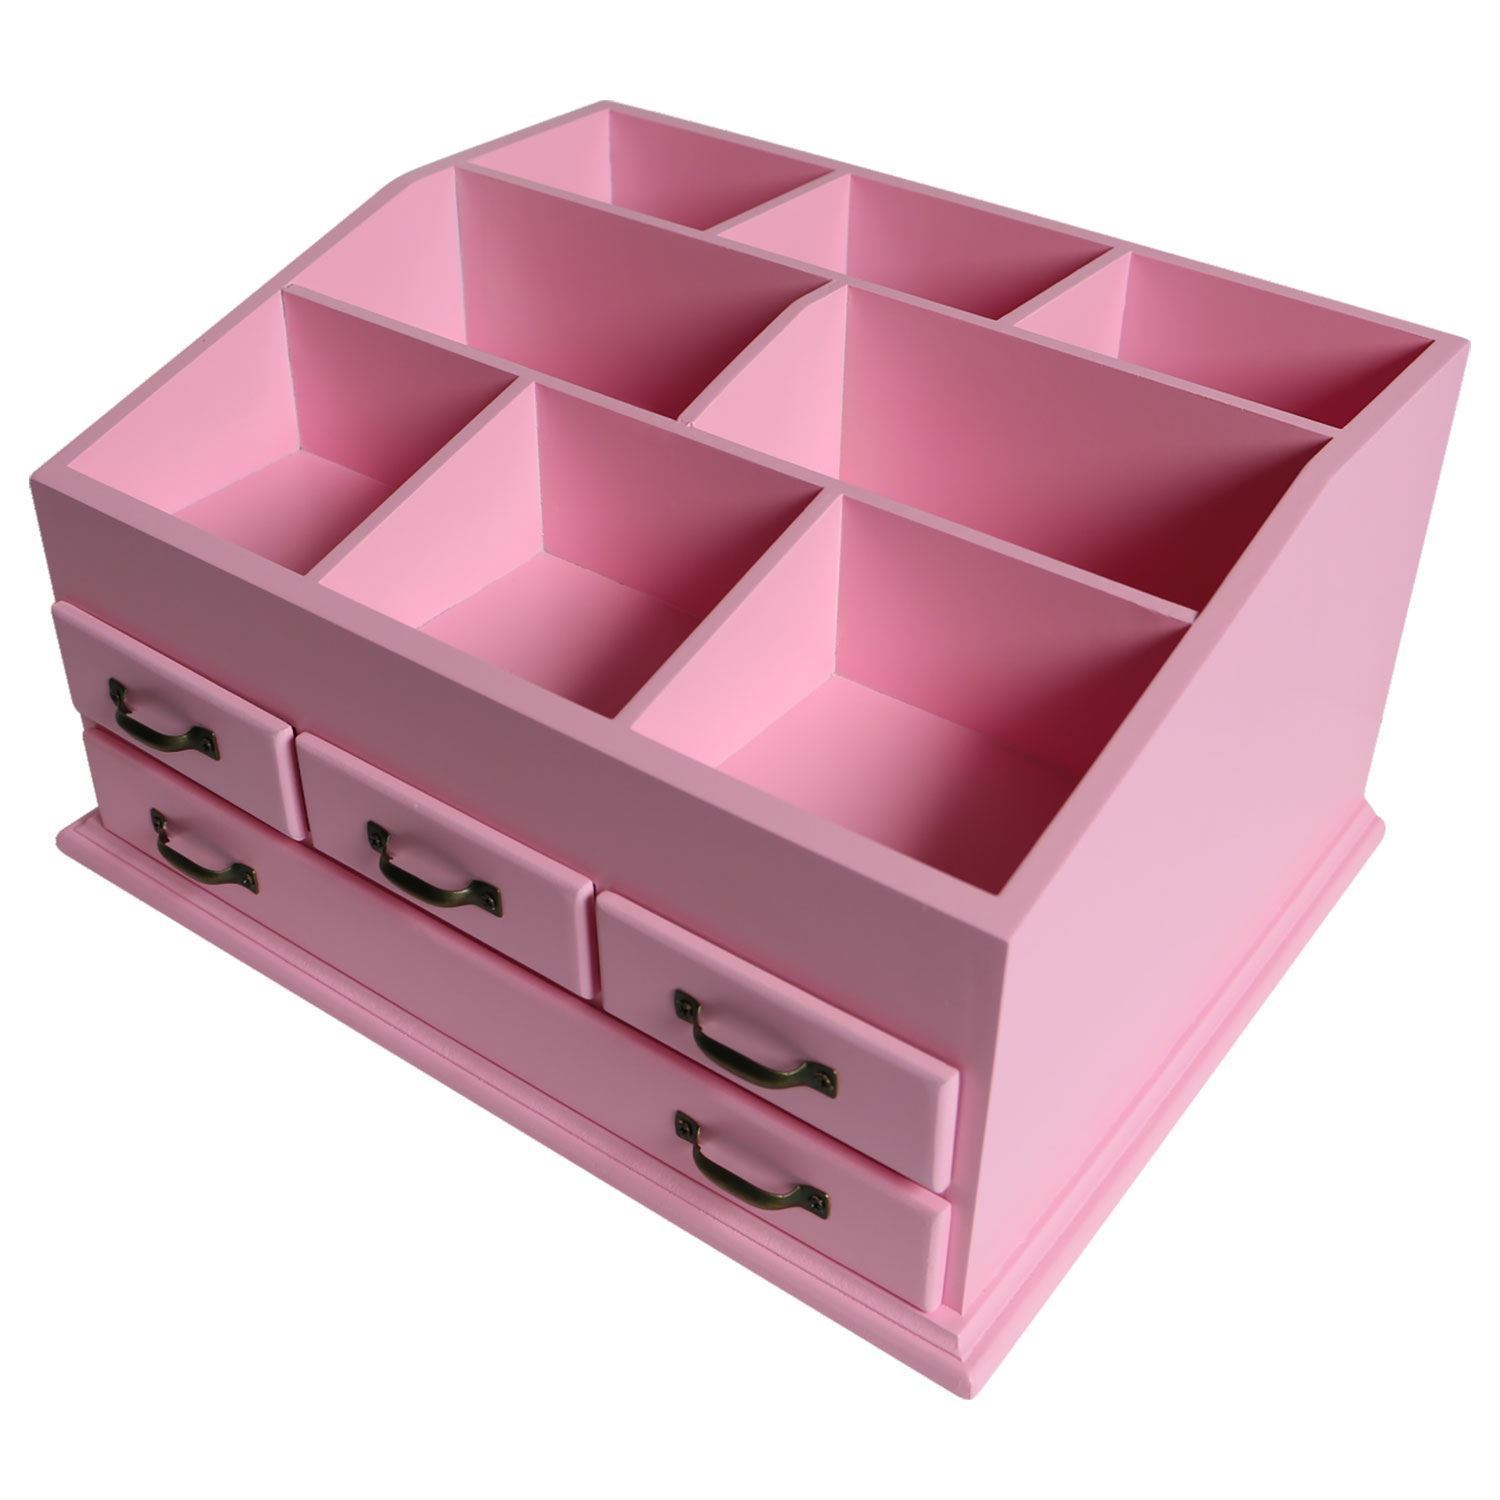 Wooden 4 Drawer Jewellery Large Cosmetic Makeup Storage